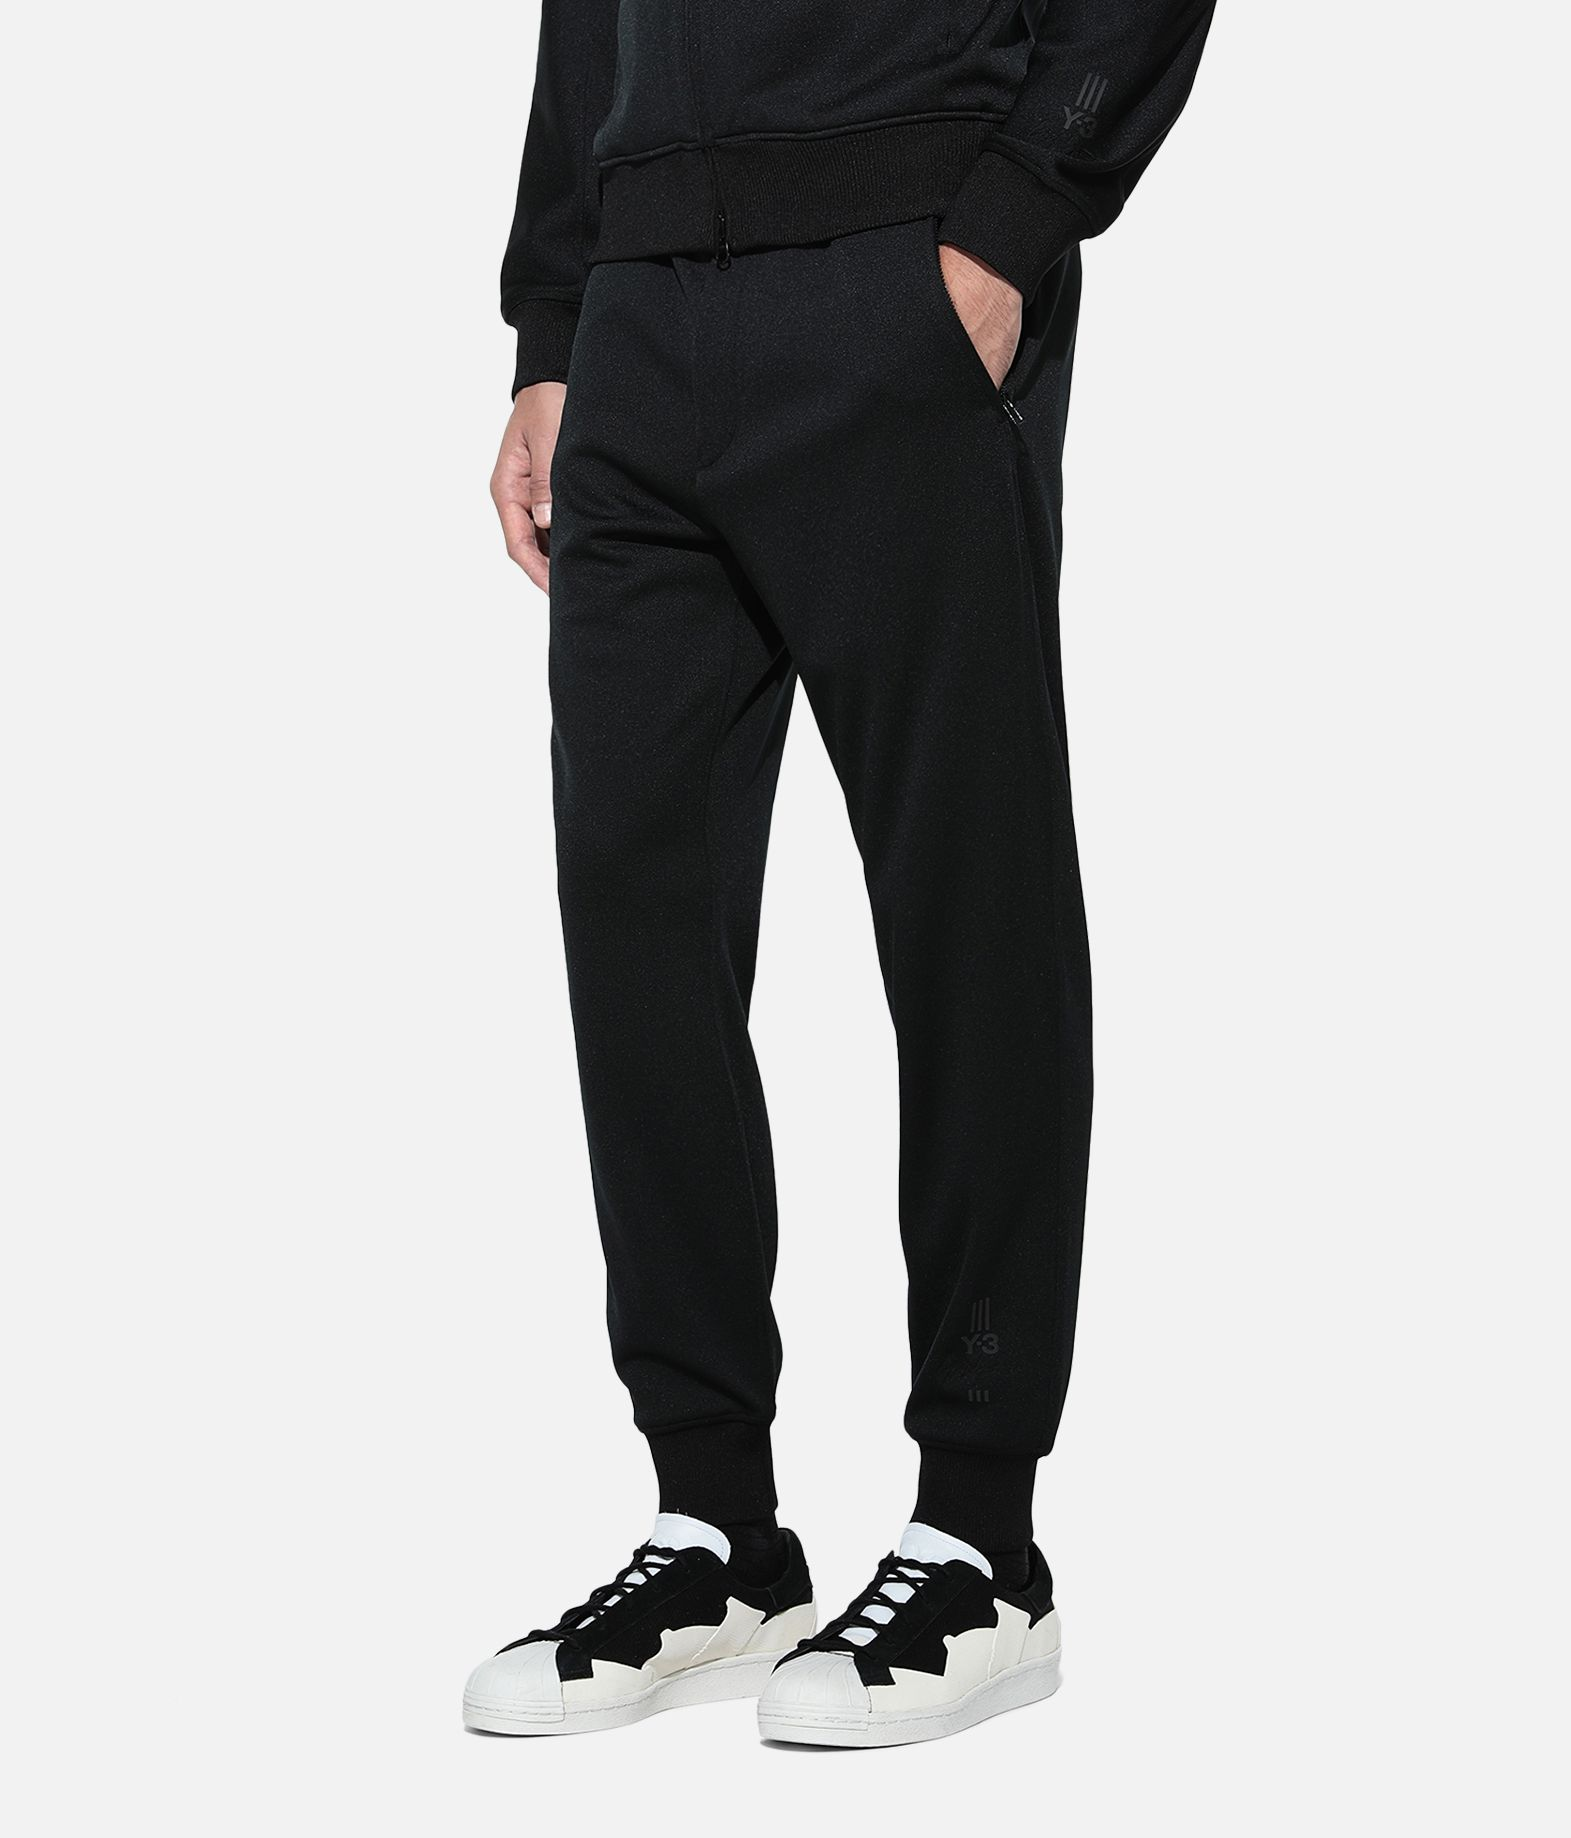 Y-3 Y-3 New Classic Track Pants Track pant Man e